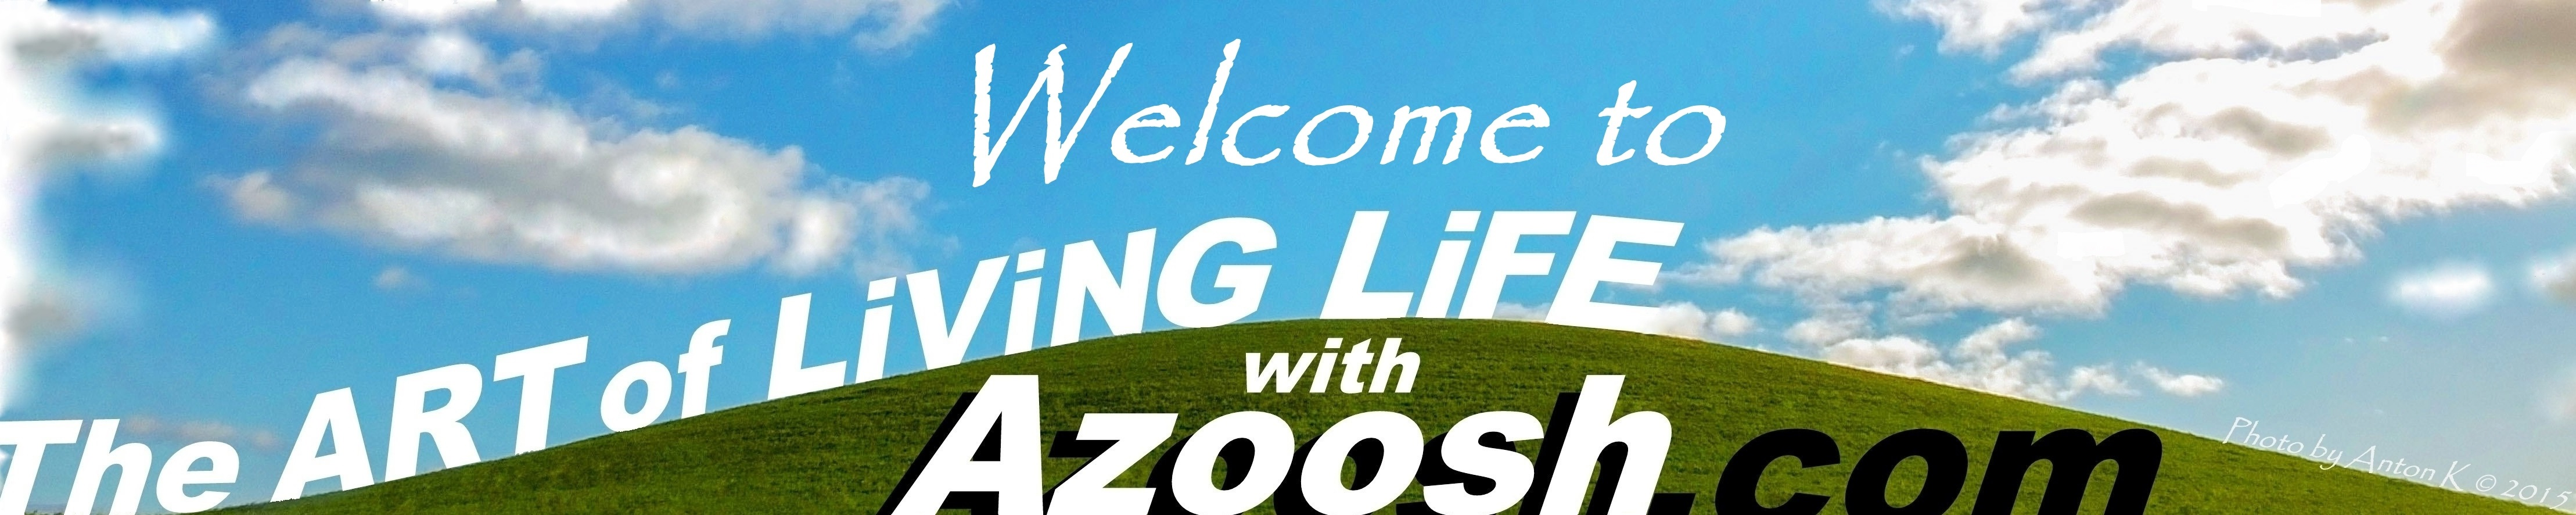 Welcome Art of Living Life Azoosh hill blue sky clouds banner Wangolina photo